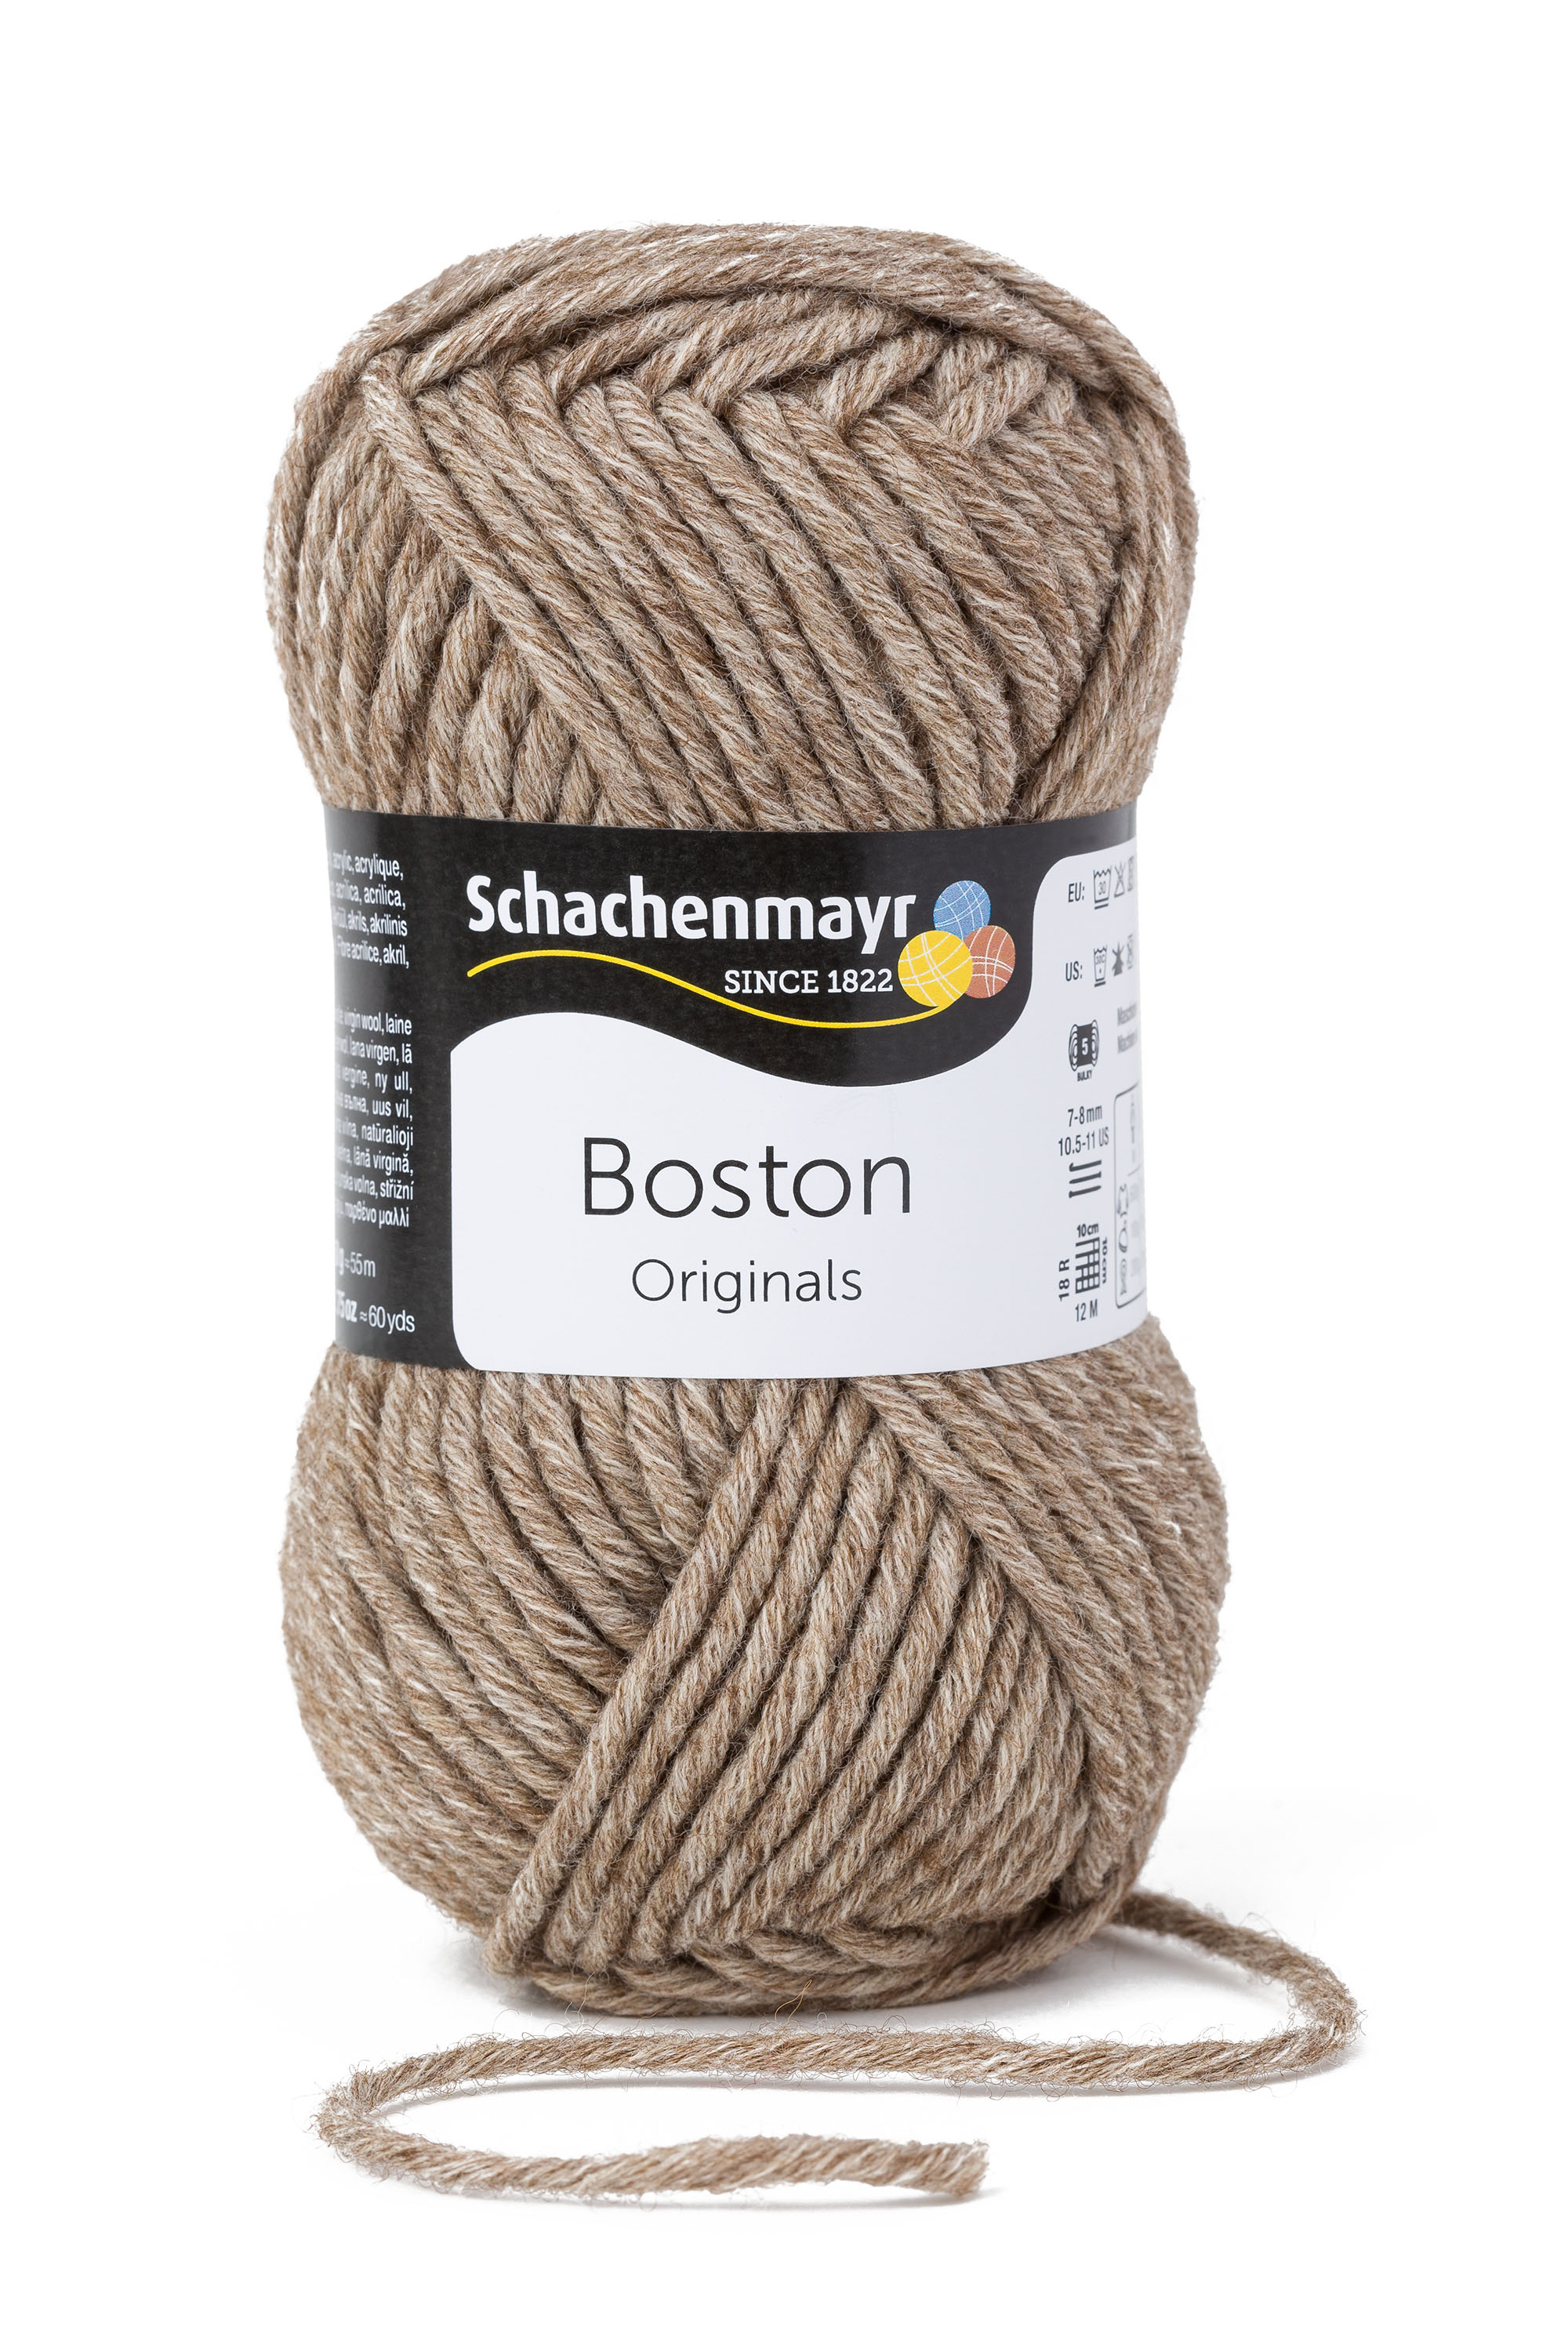 Boston 50g 0,5 kg 9807412